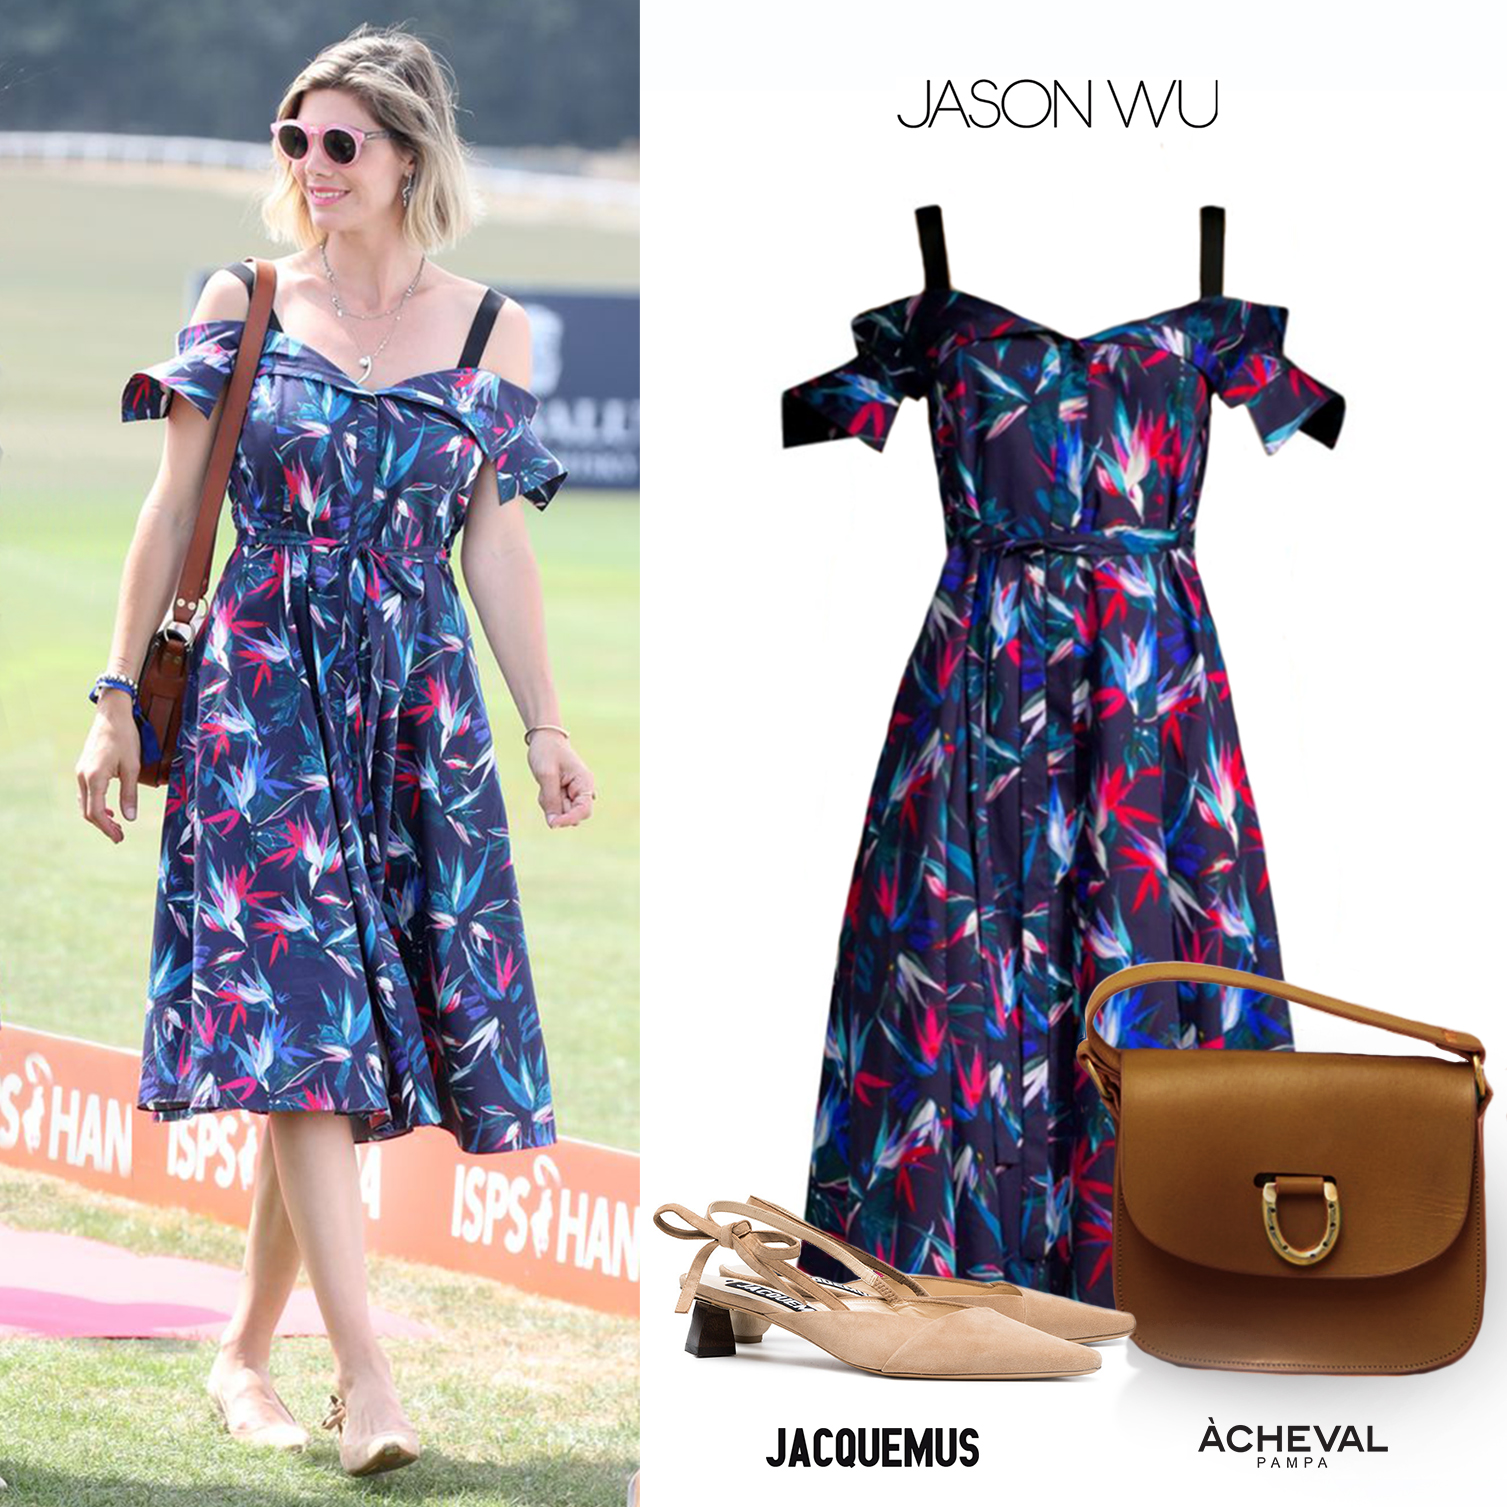 Delfina_Blaquier_Sentebale_Polo_Match_Jason_Wu_Printed_Off_Shoulder_Dress_Jacquemus_Mule_Geometric_Heel_Slingback_Acheval_Pampa_Bag_2018.jpg